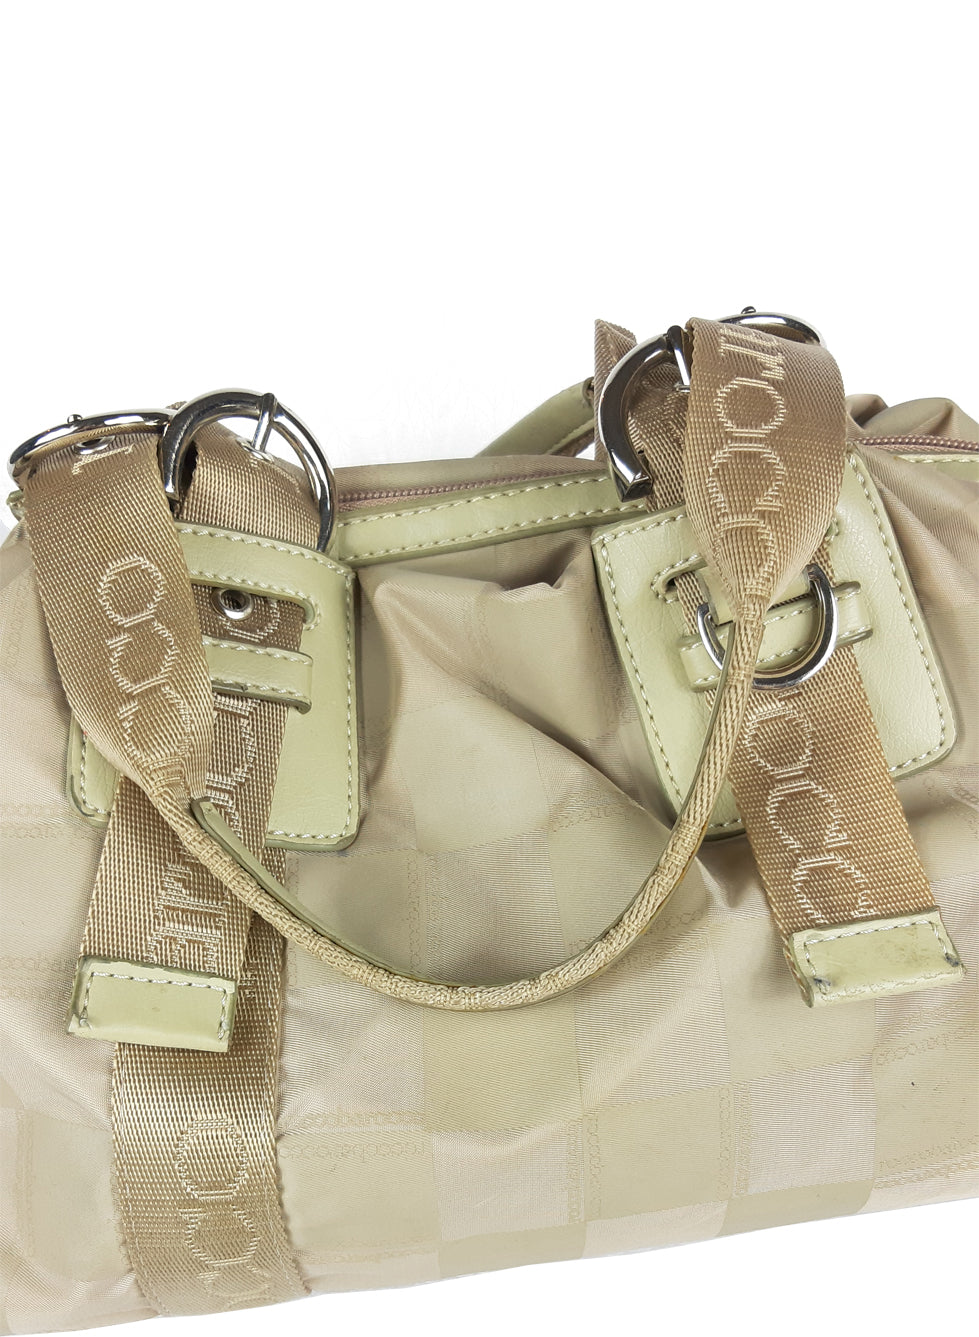 Roccobarocco Beige Handbag in Monogram Cloth